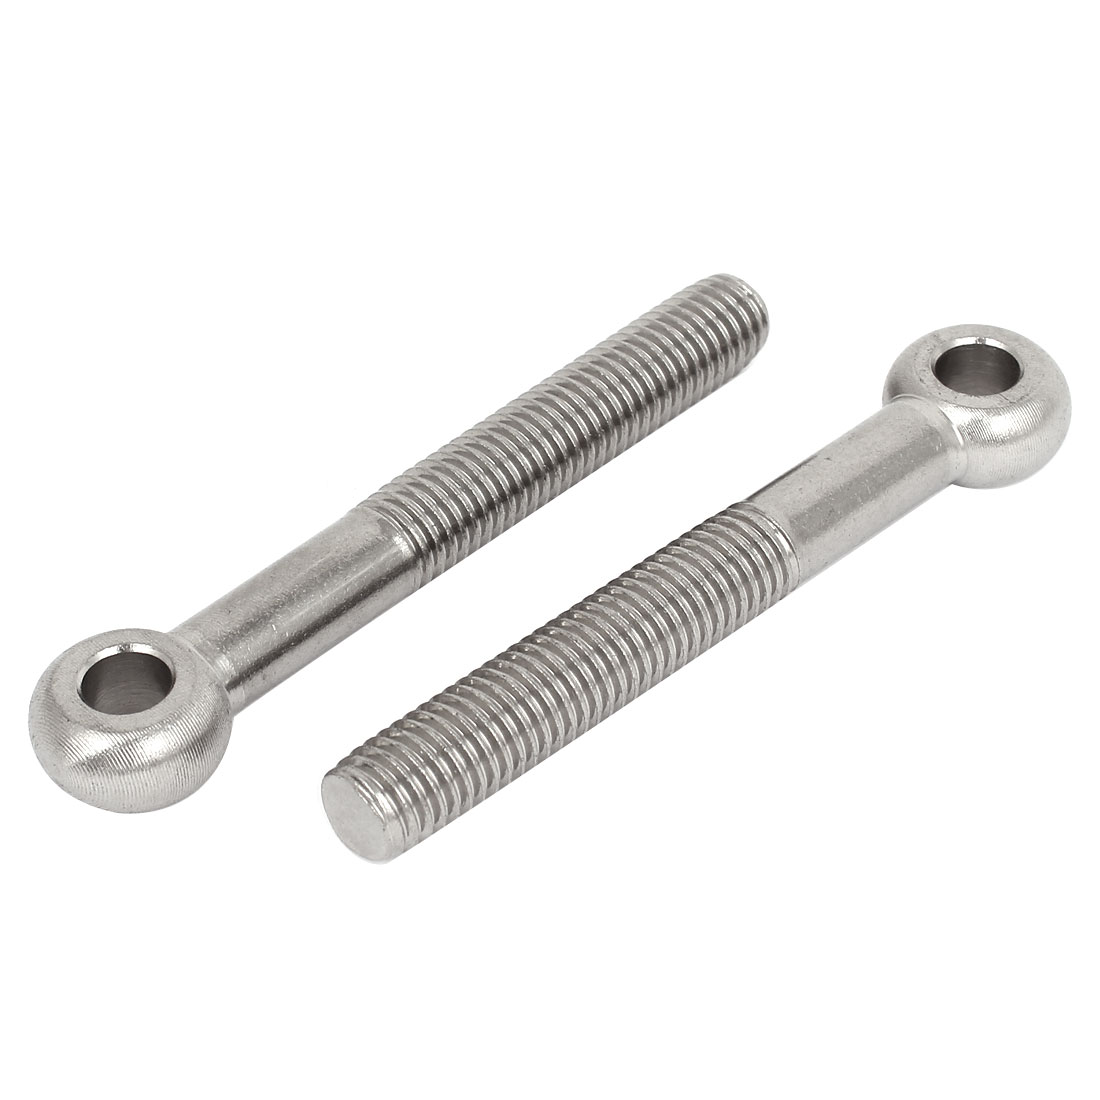 M14 x 100mm 10mm Eye Dia 304 Stainless Steel Swing Bolt Silver Tone 2 Pcs